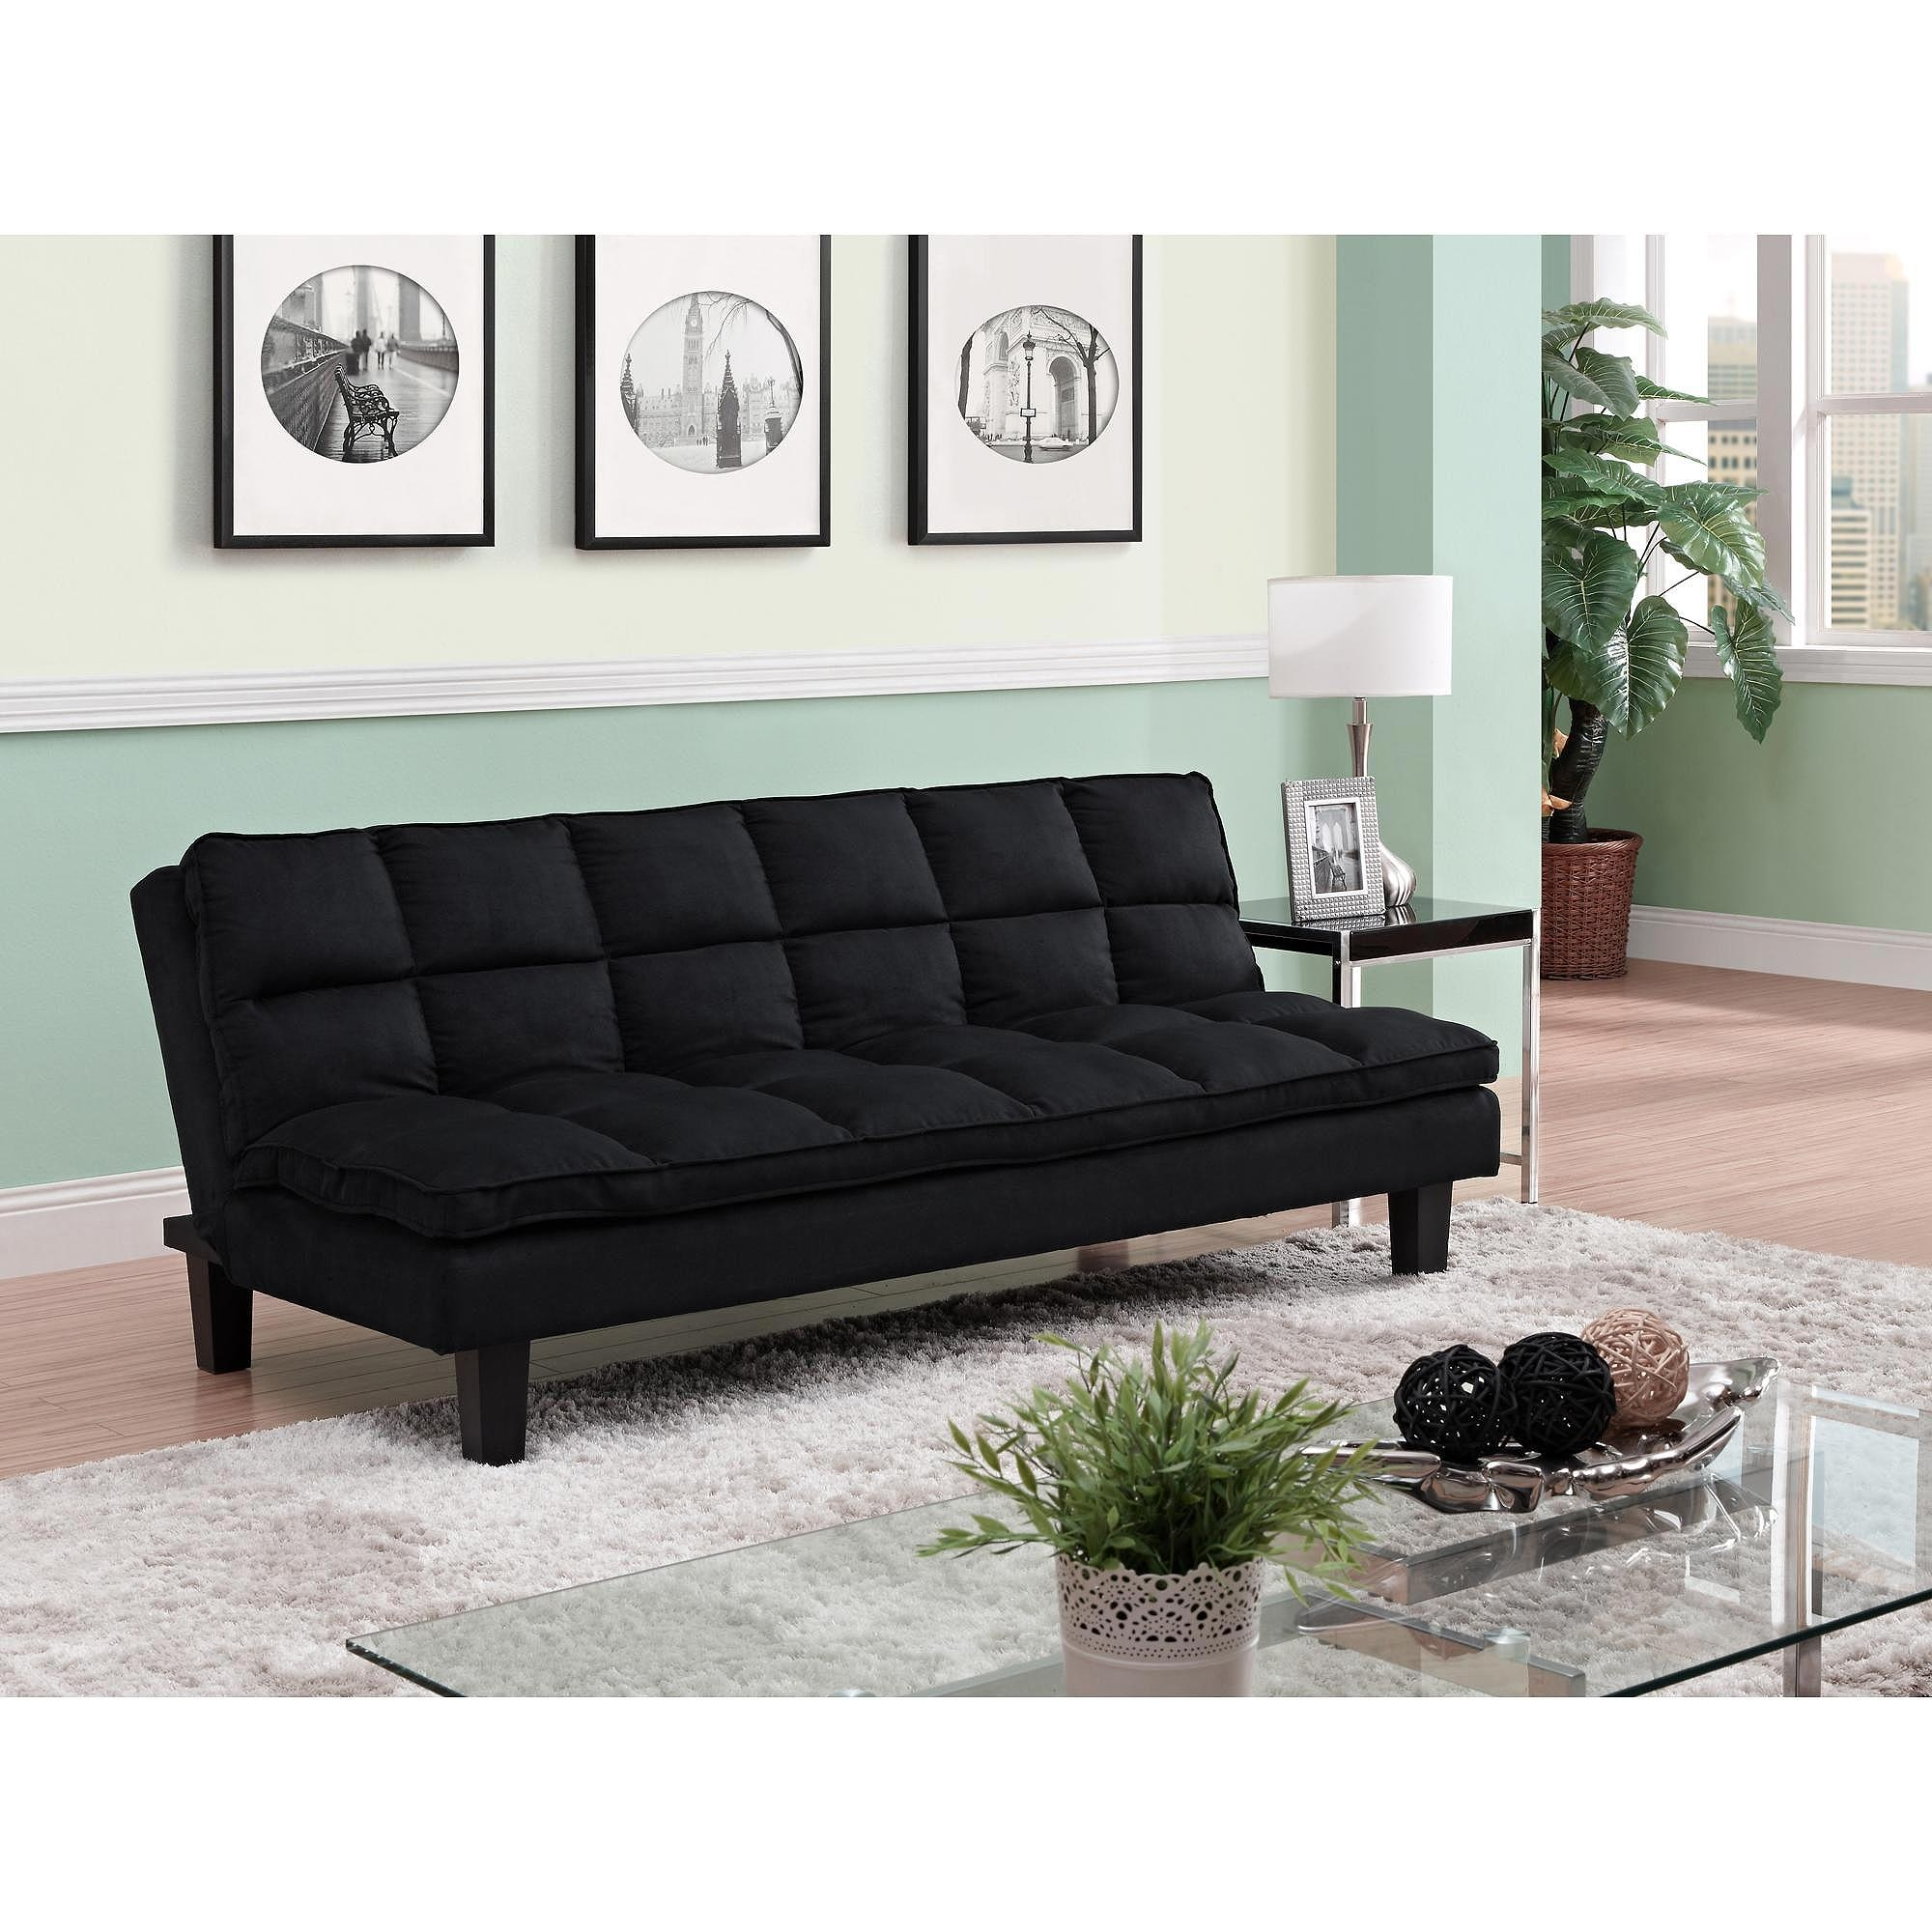 Allegra Pillow Top Futon, Black – Walmart Within Wallmart Sofa (View 17 of 20)